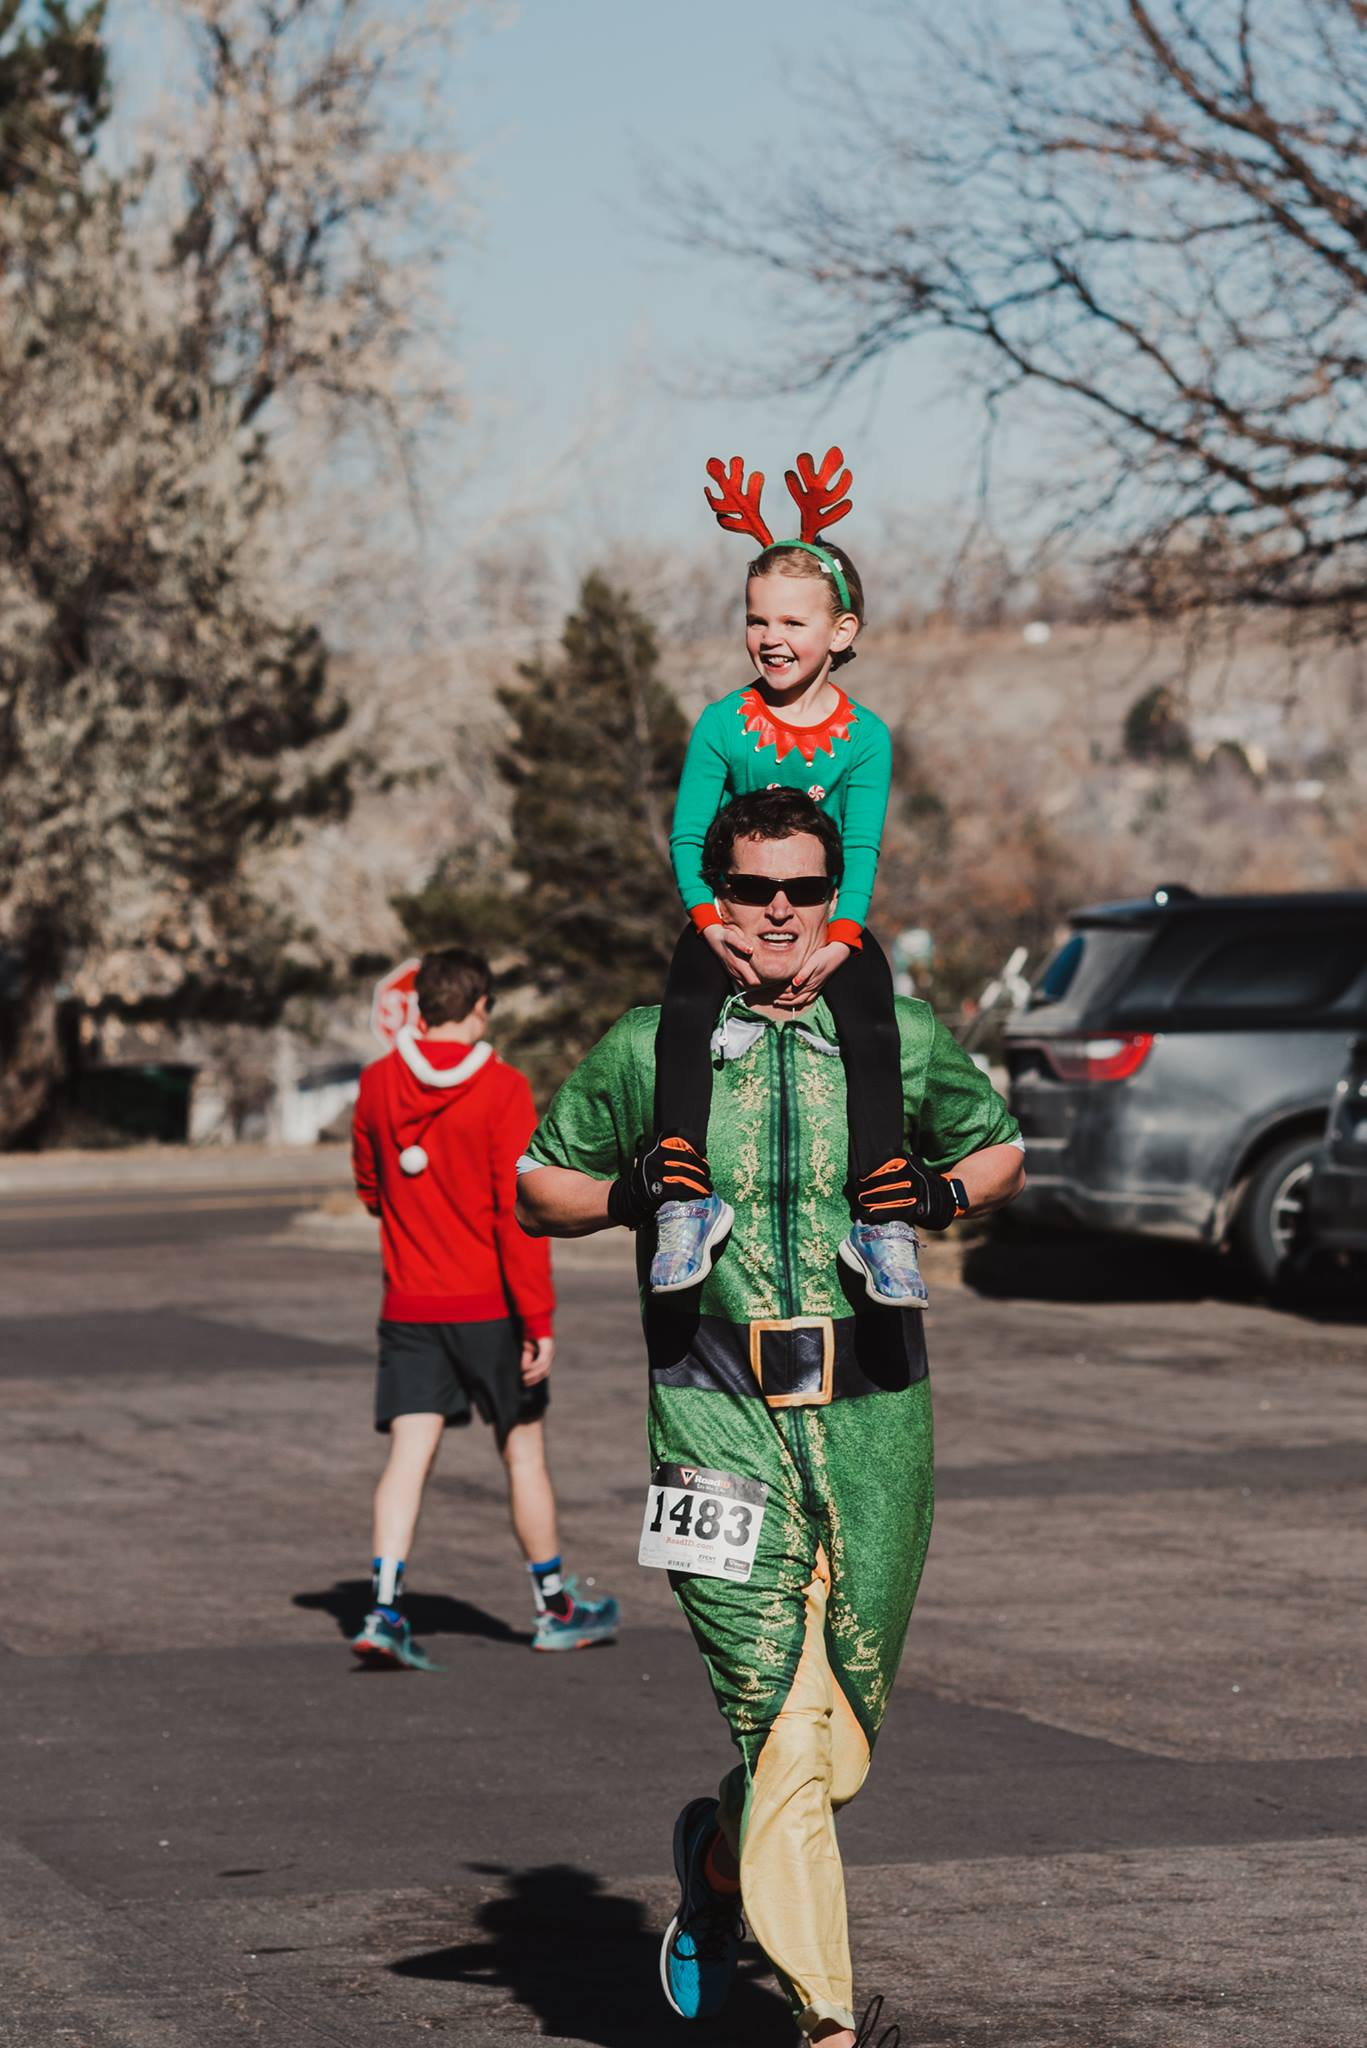 Dress to impress for our post run Ugly Sweater contest!